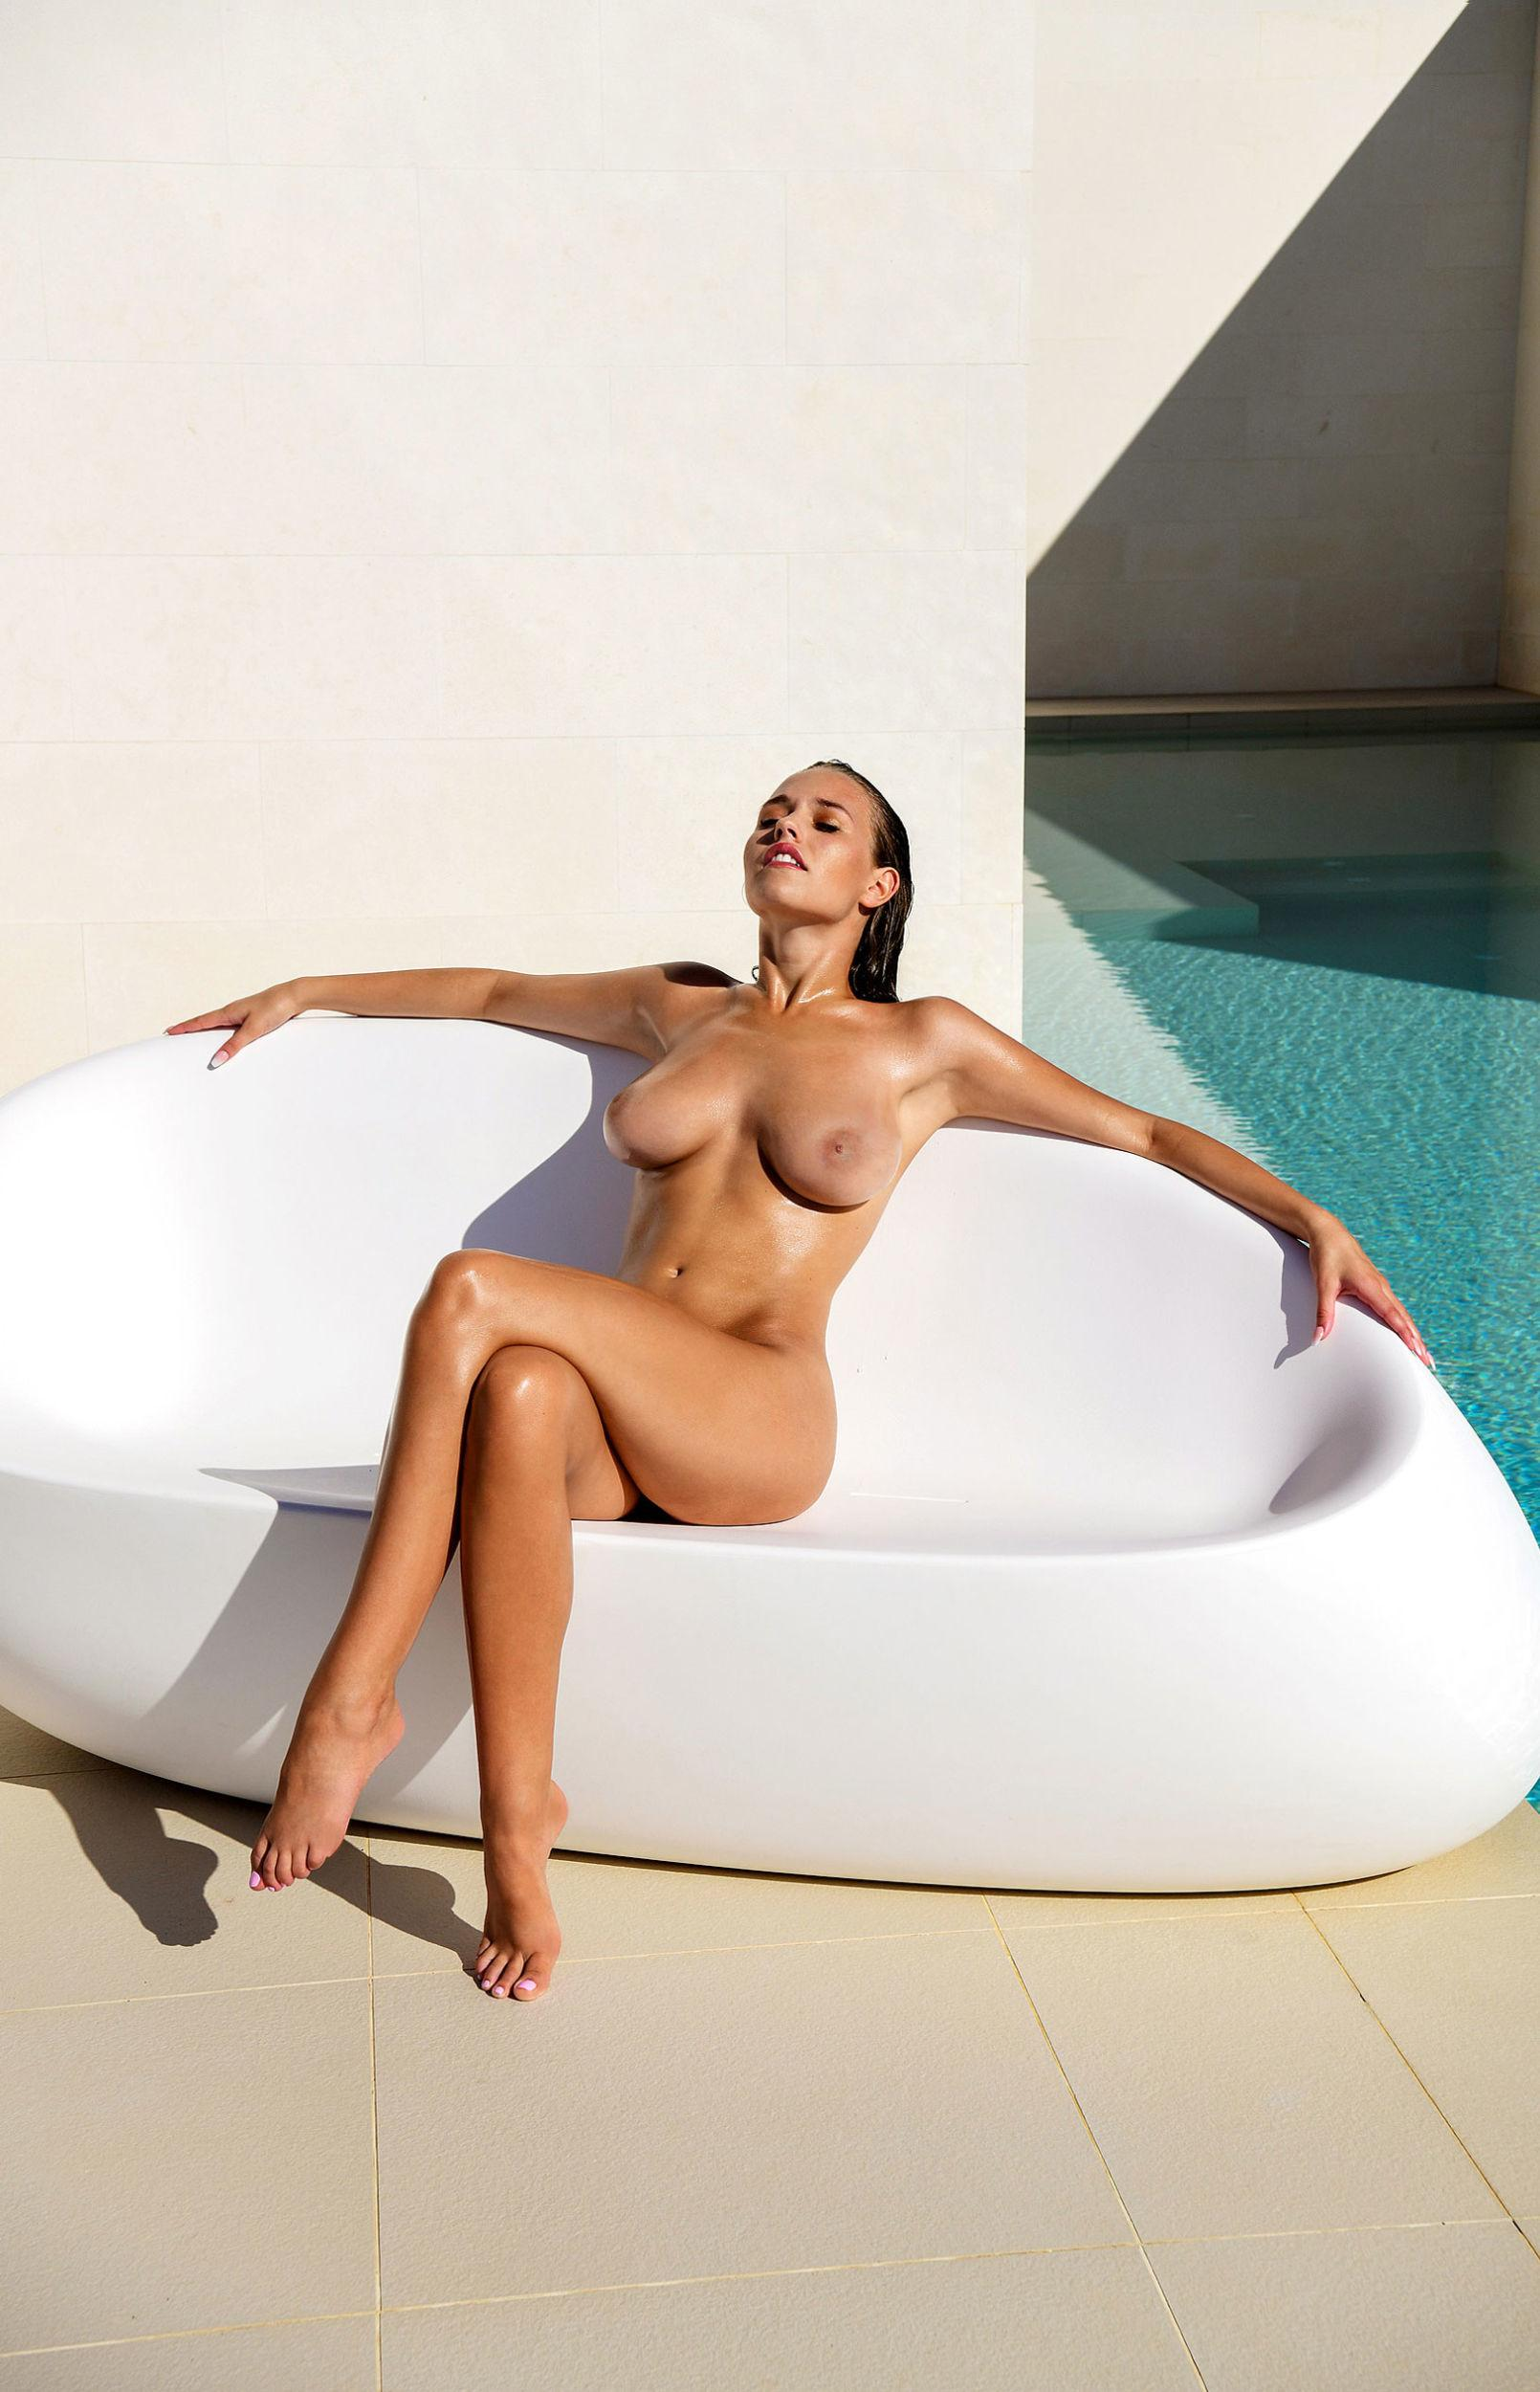 Laura Muller - Thomas Fiedler (Playboy) photoshoot